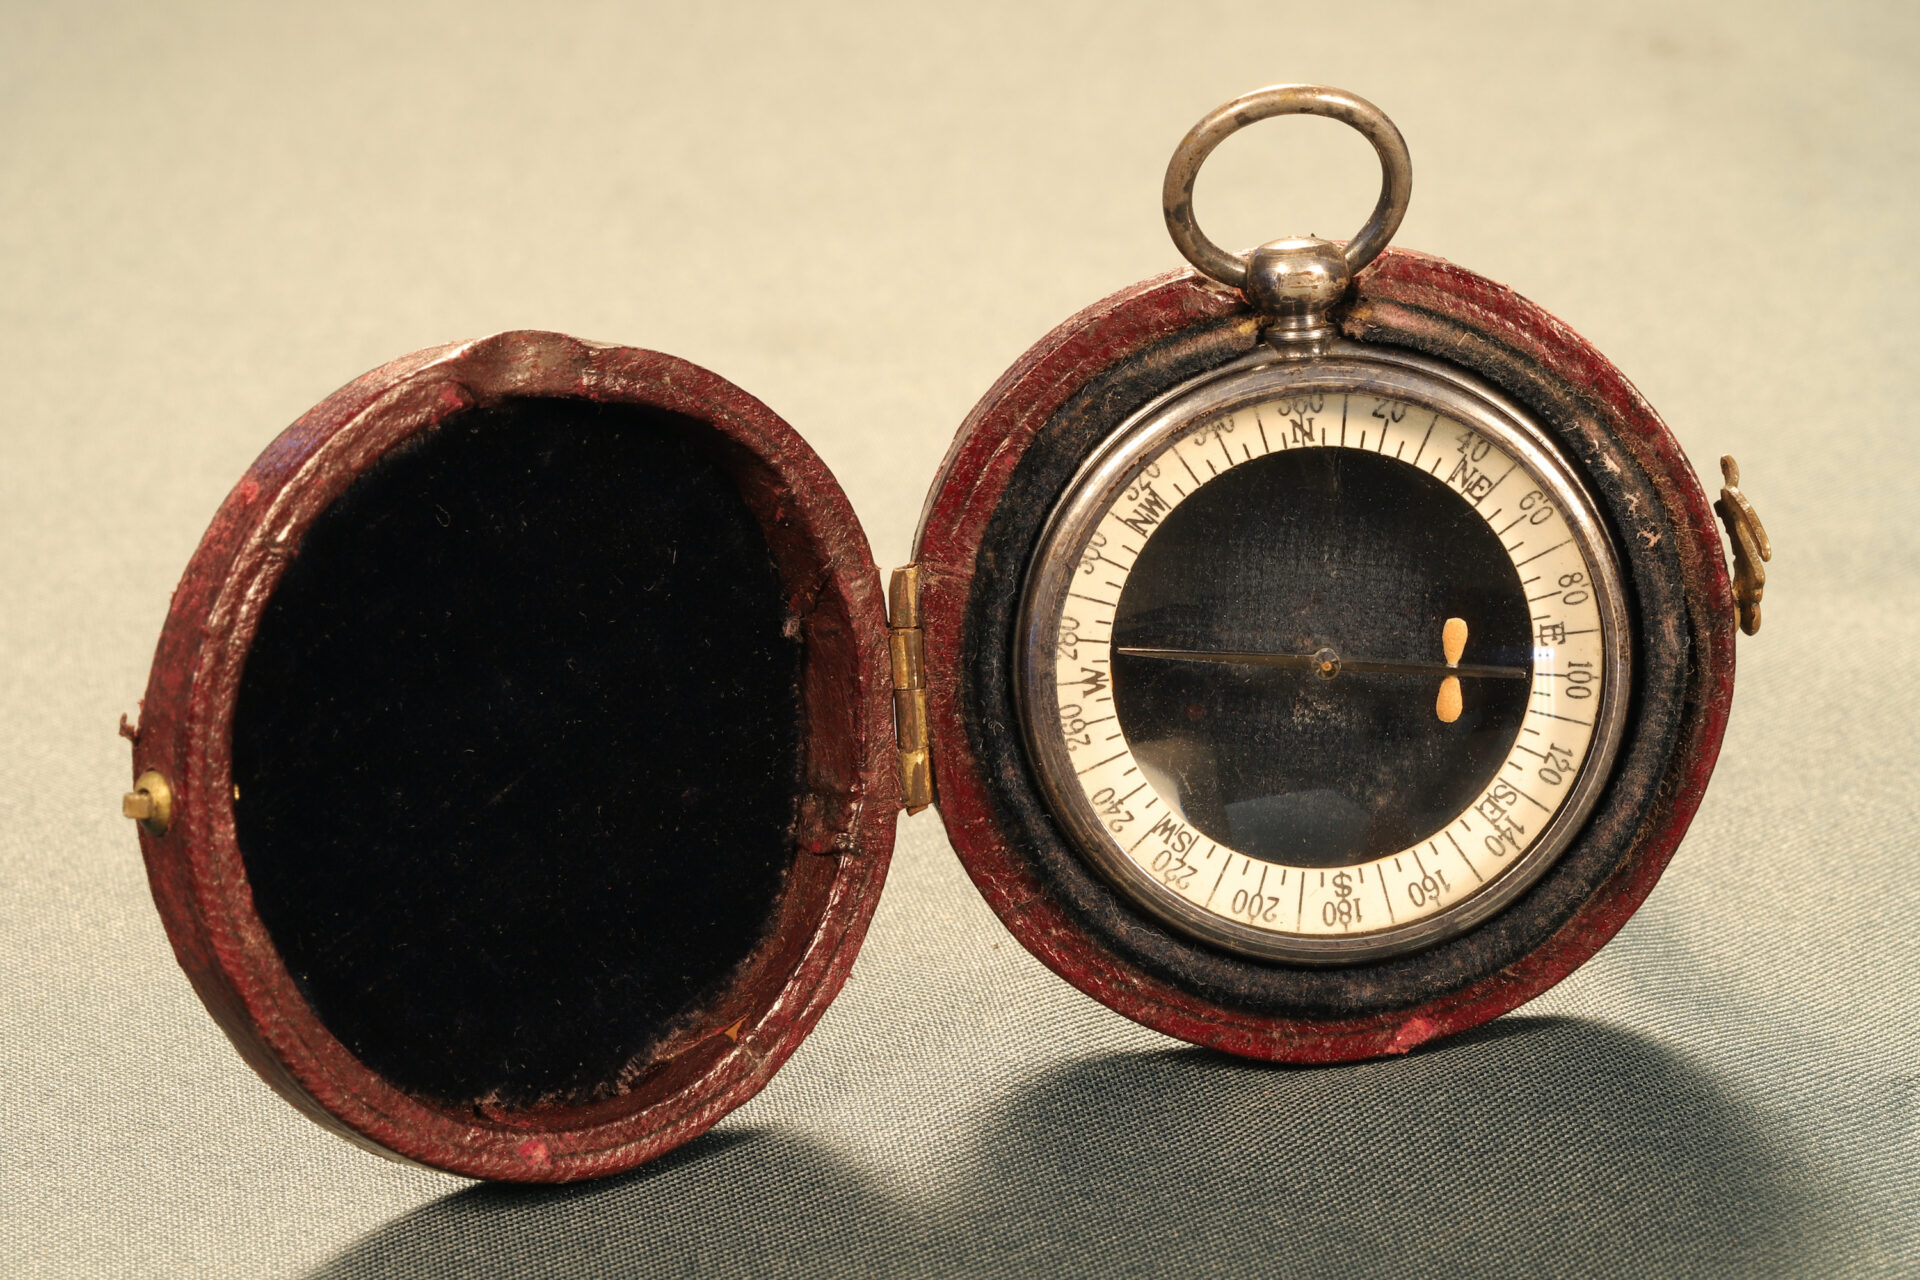 Image of reverse of Barker Radiant Transparent Pebble Lens Compass c1910 in travel case